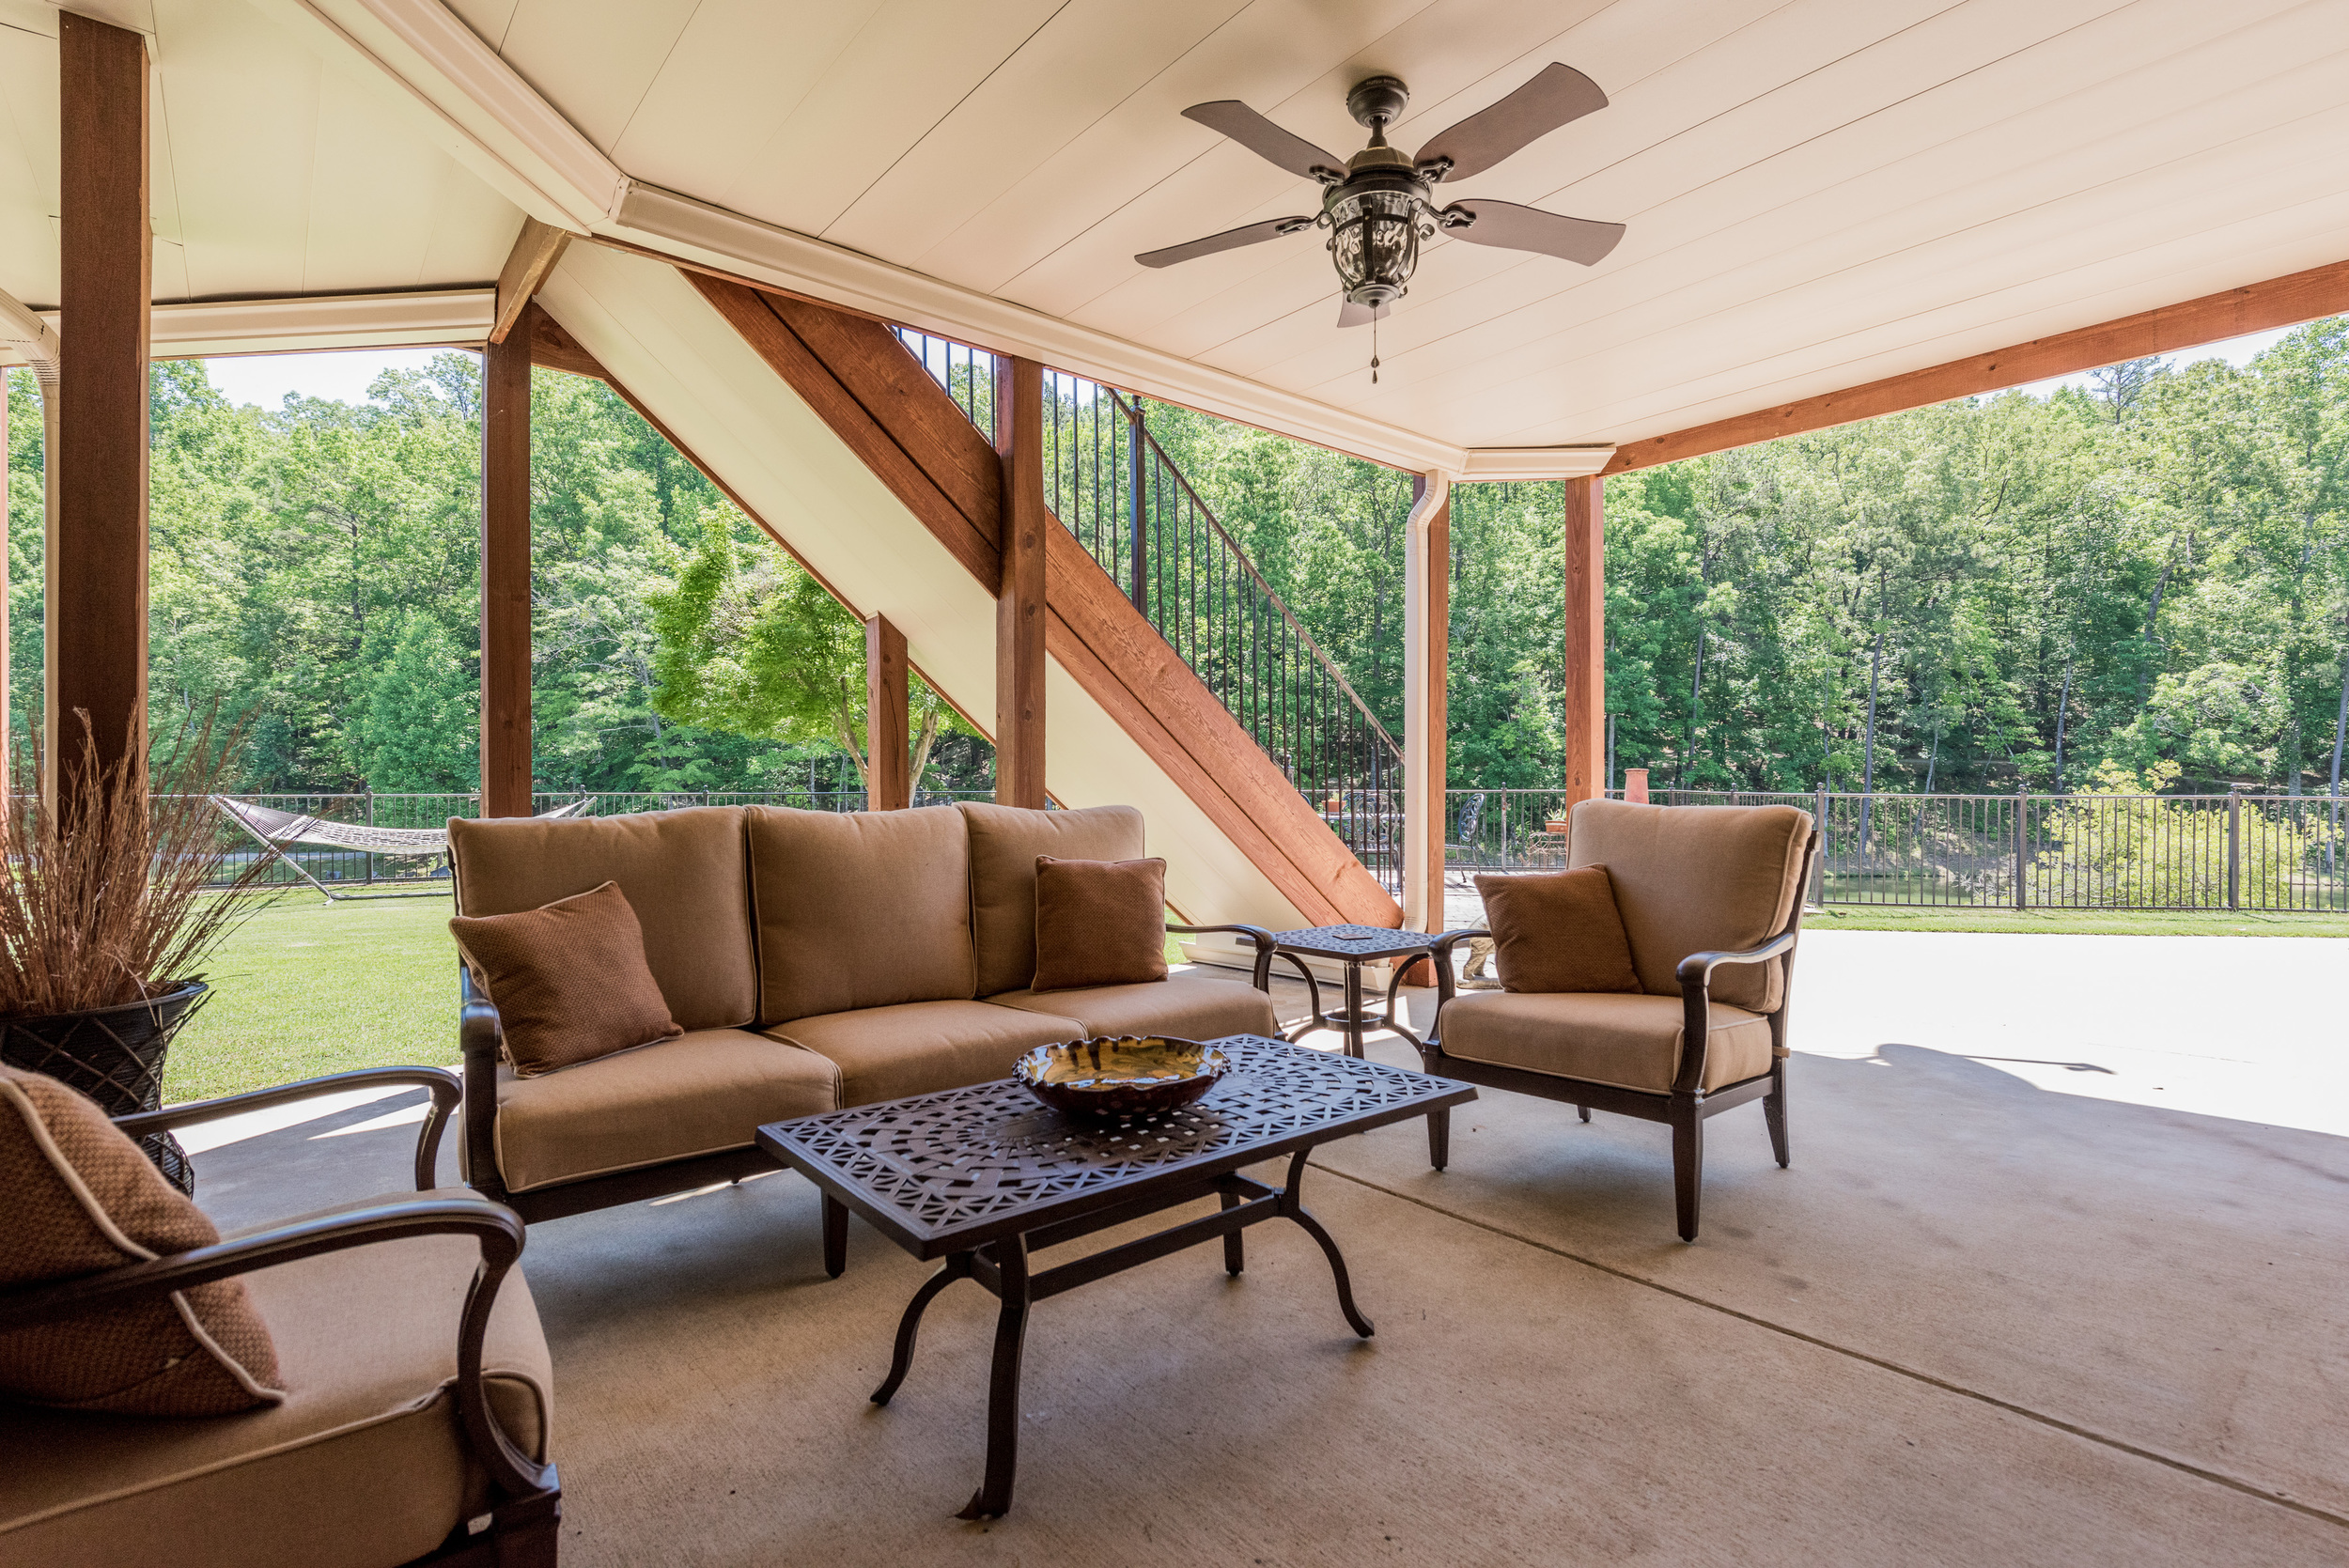 Lake Crest Deck with ZipUp Ceiling and Underdeck installed. For more Info go to: http://zipupbirmingham.com